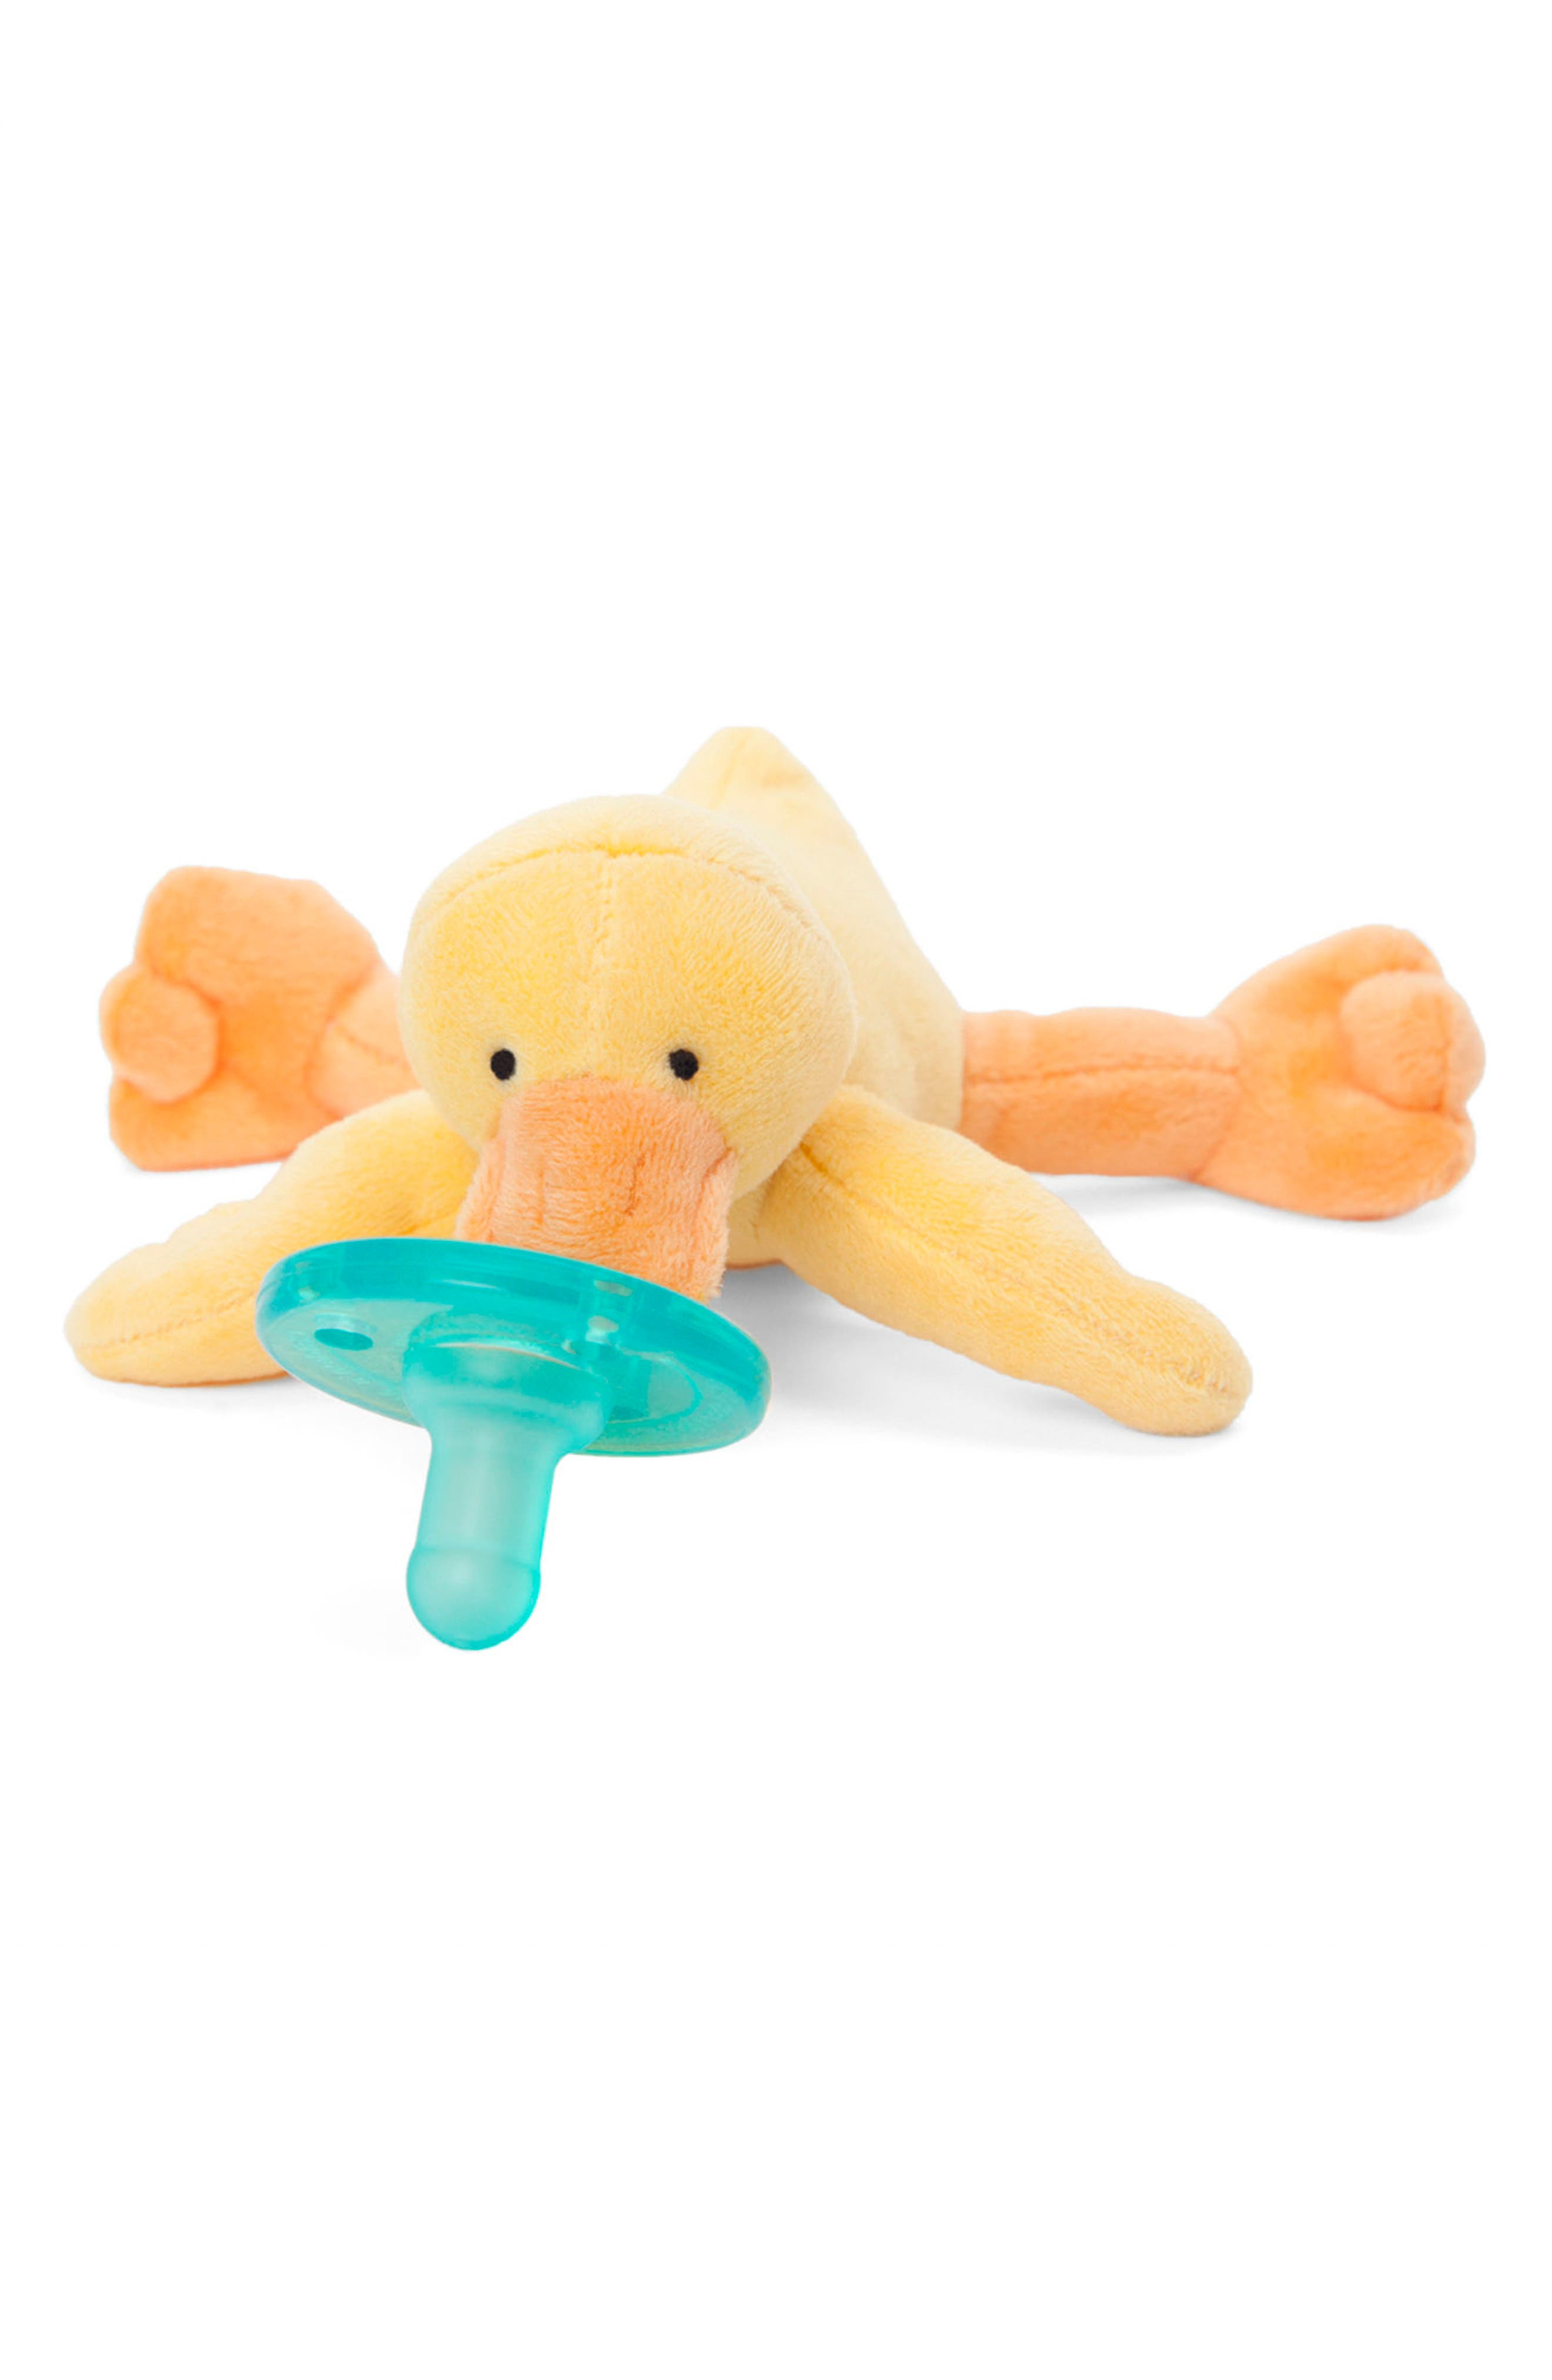 Baby Yellow Duck Pacifier Toy,                             Alternate thumbnail 3, color,                             700